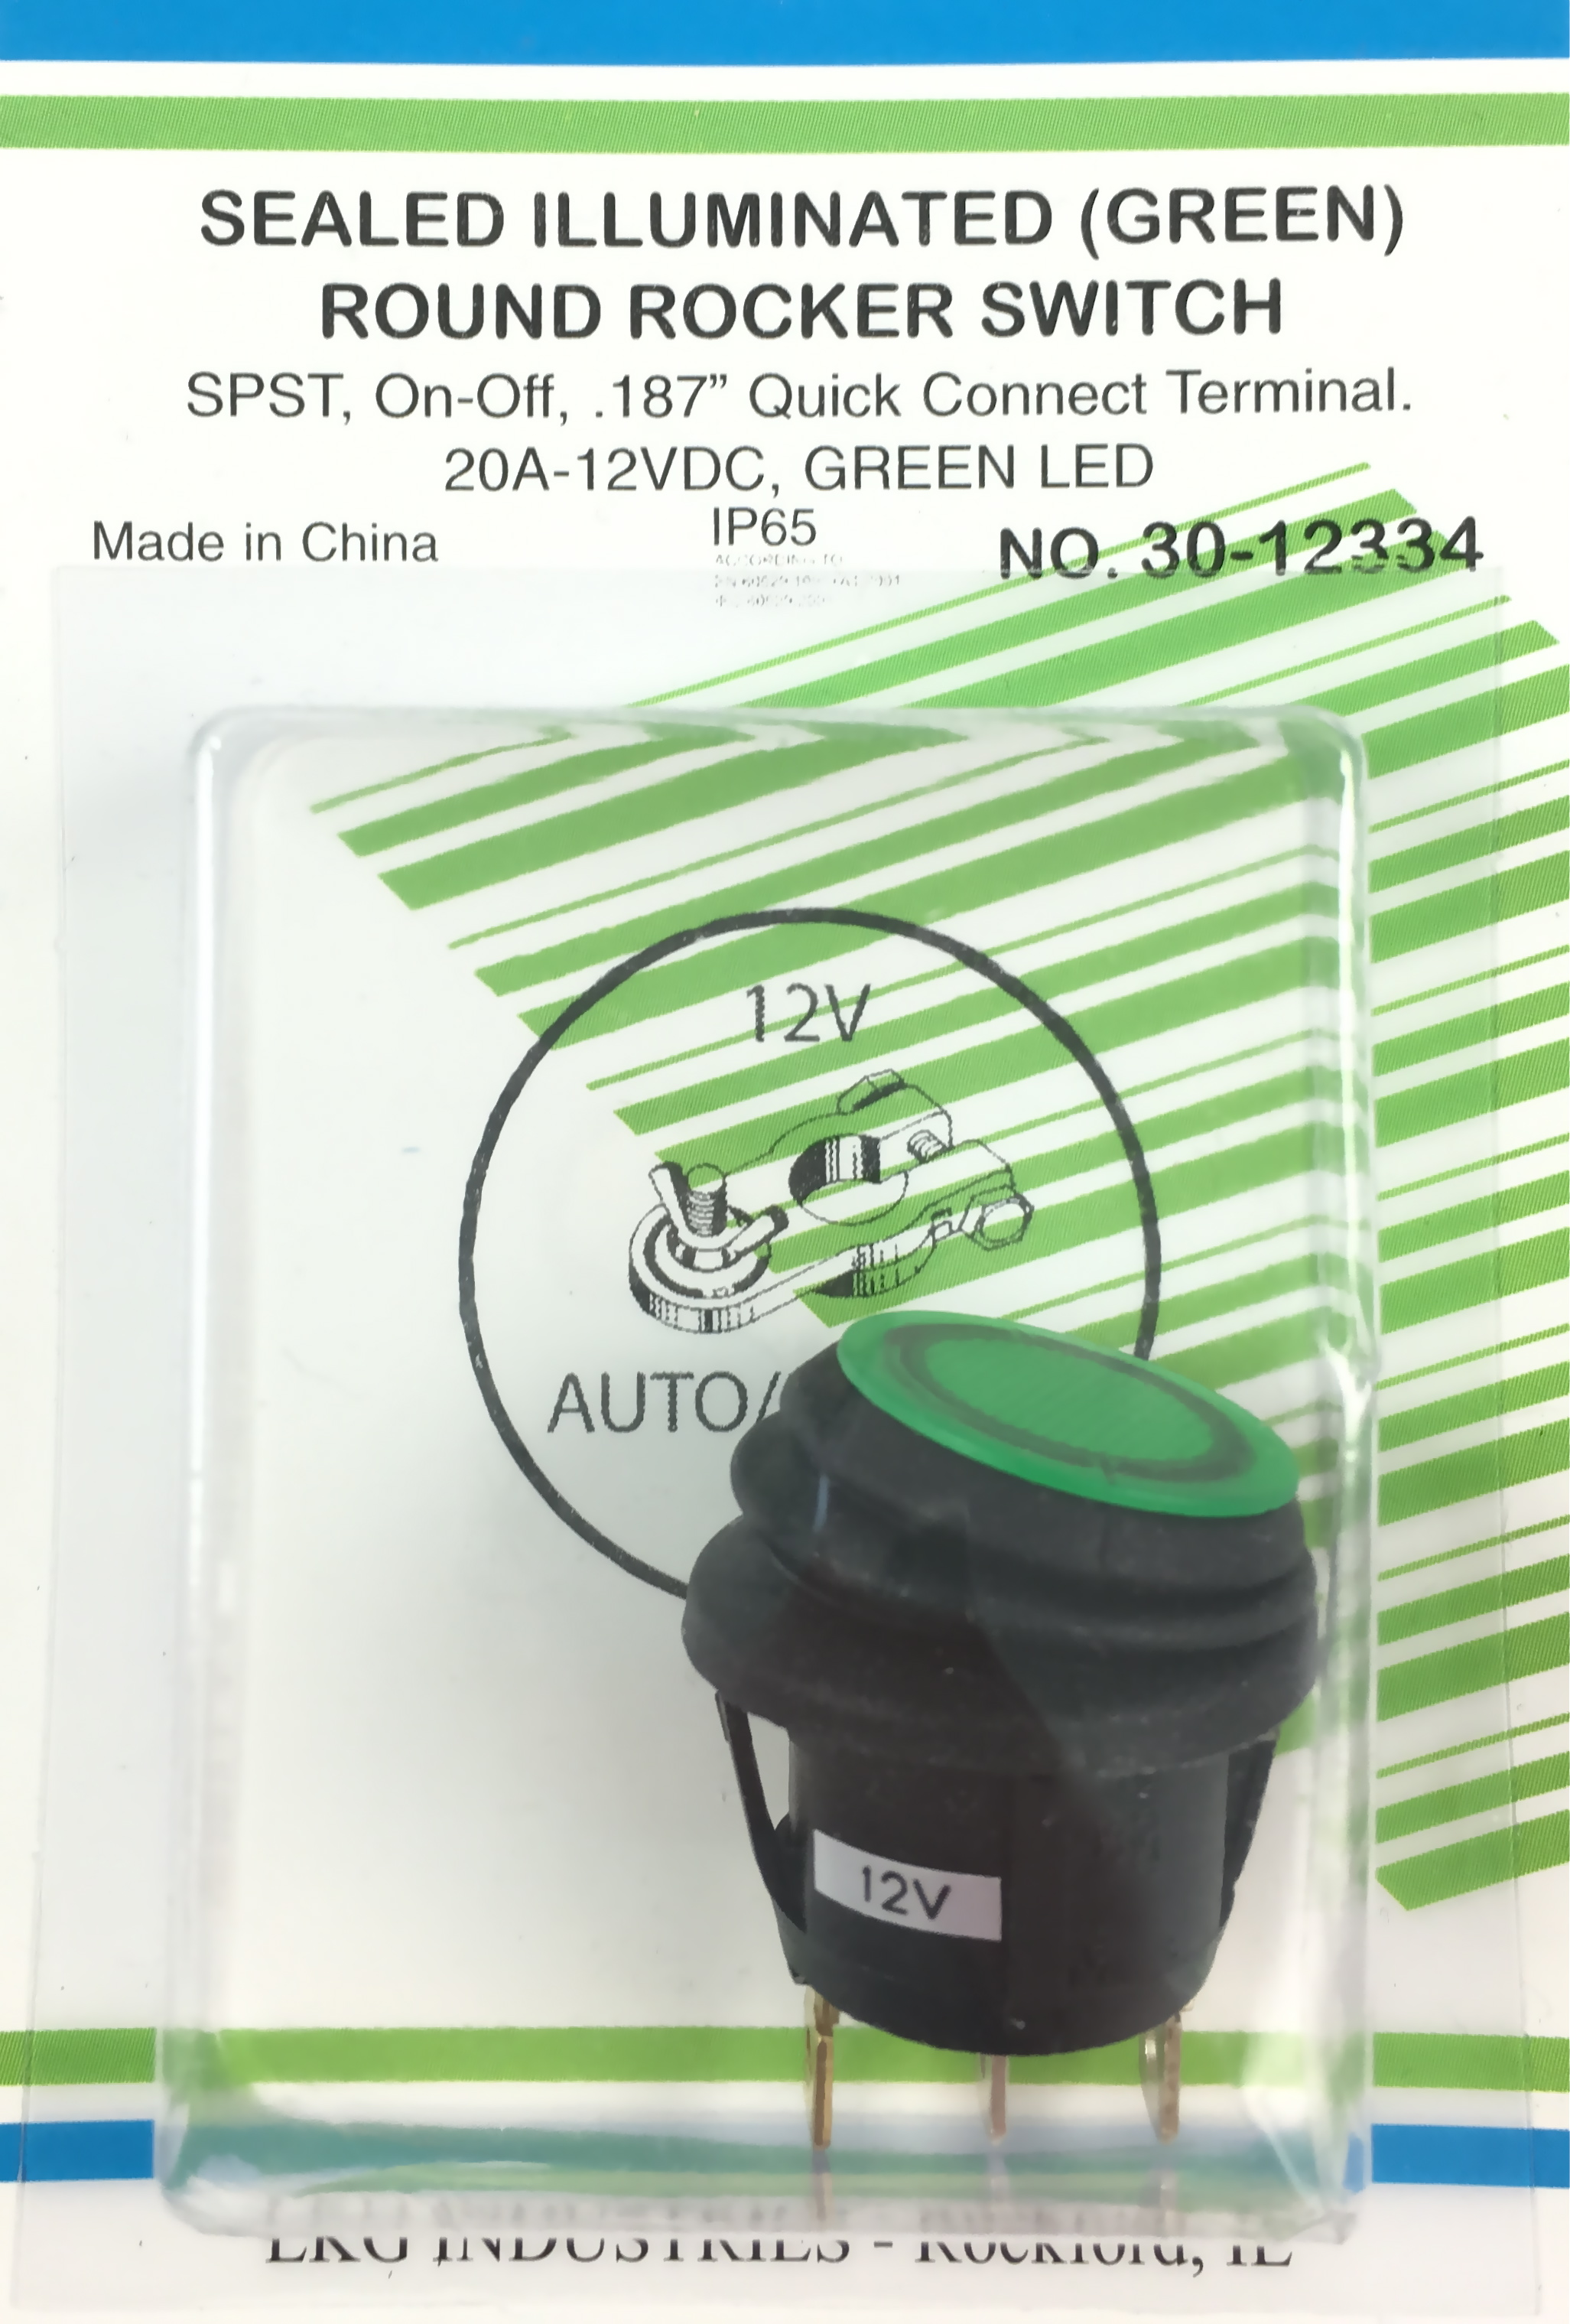 Orvac Electronics Round Rocker Switch Wiring Spst 16a 125vac 12vdc Green Illuminated Splash Proof Snap In On Off